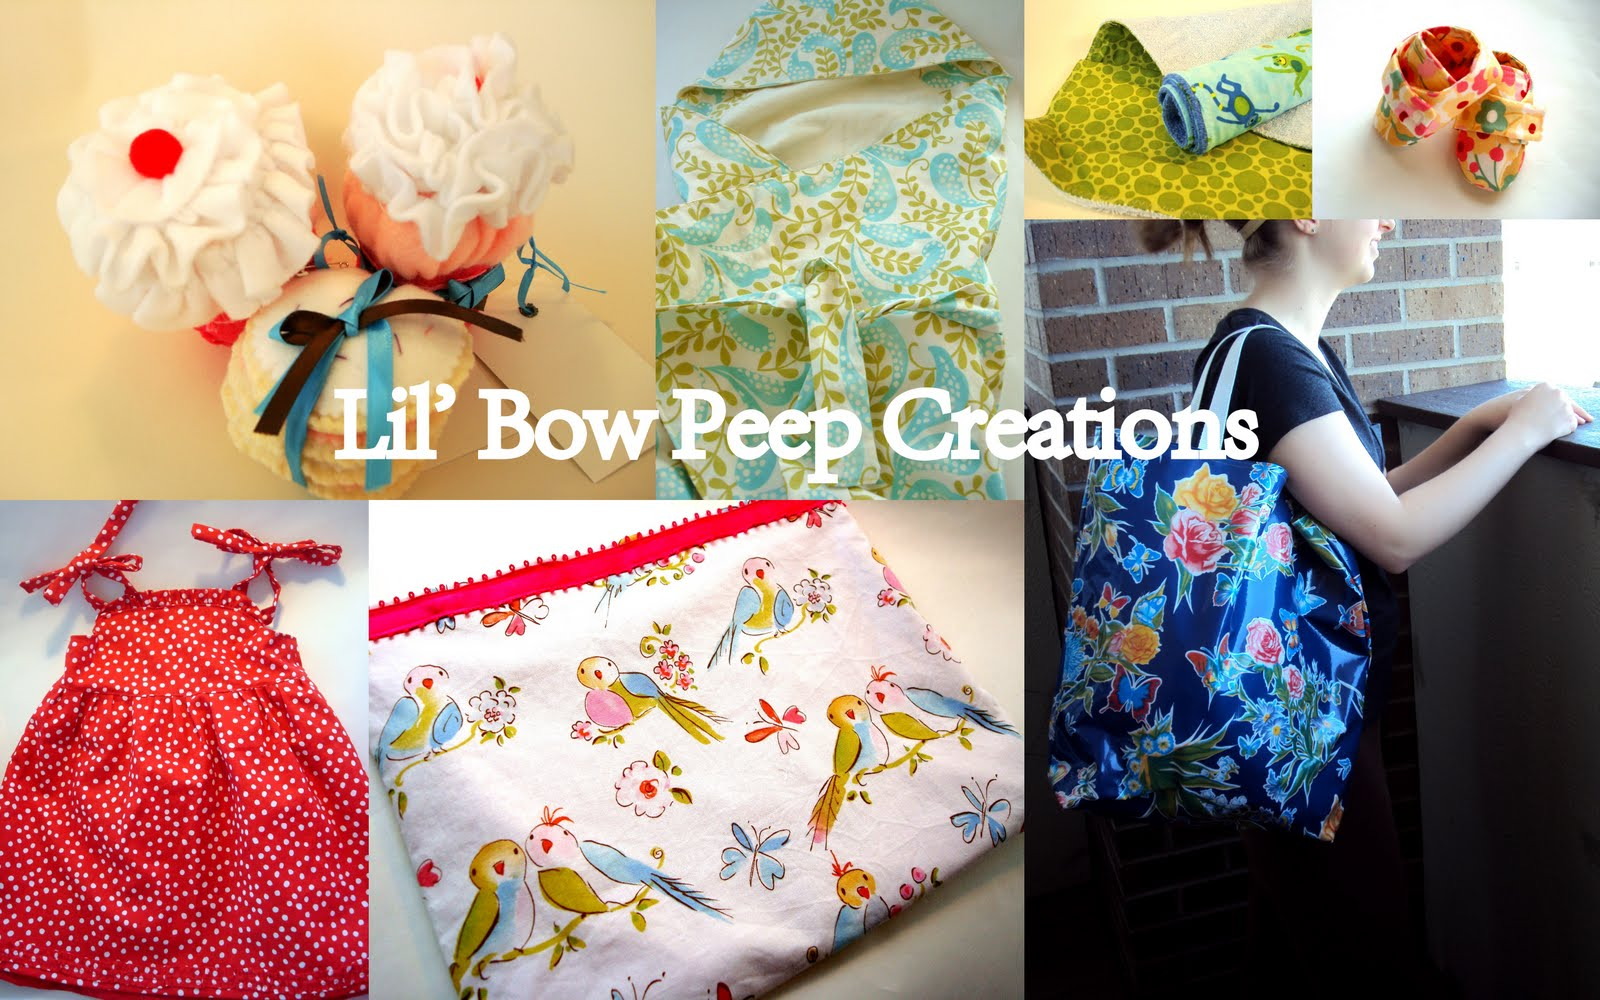 Lil' Bow Peep Creations